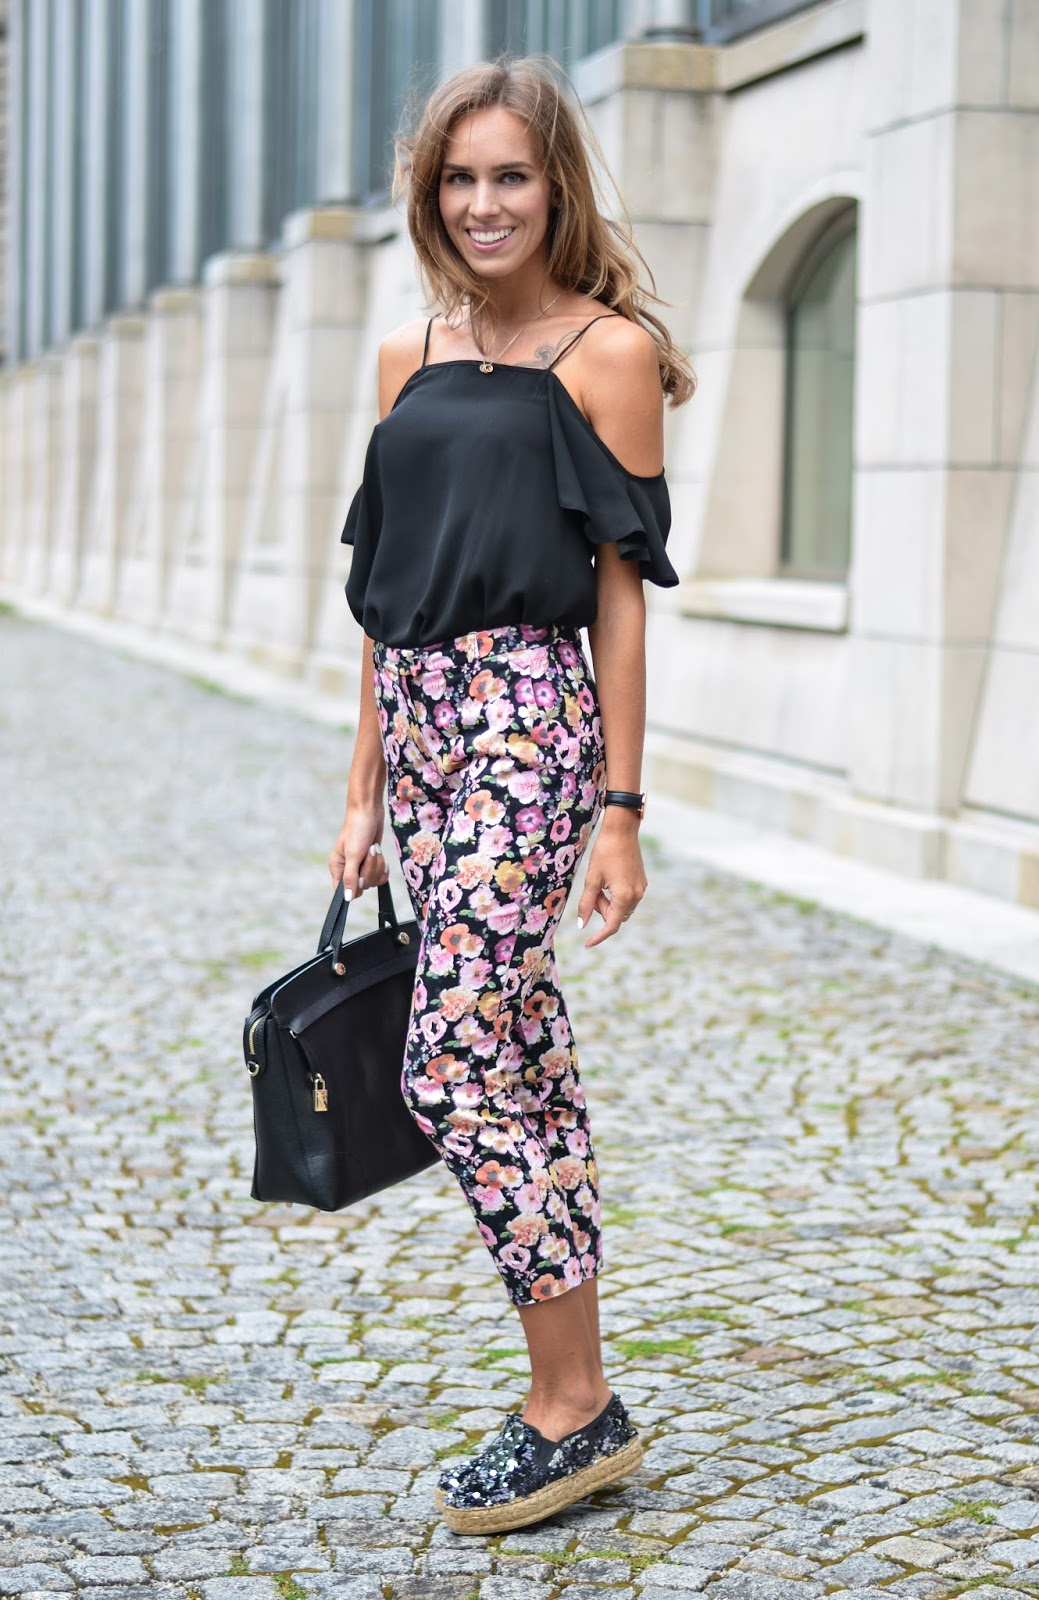 kristjaana mere summer 2015 trend outfit street style fashion blogger